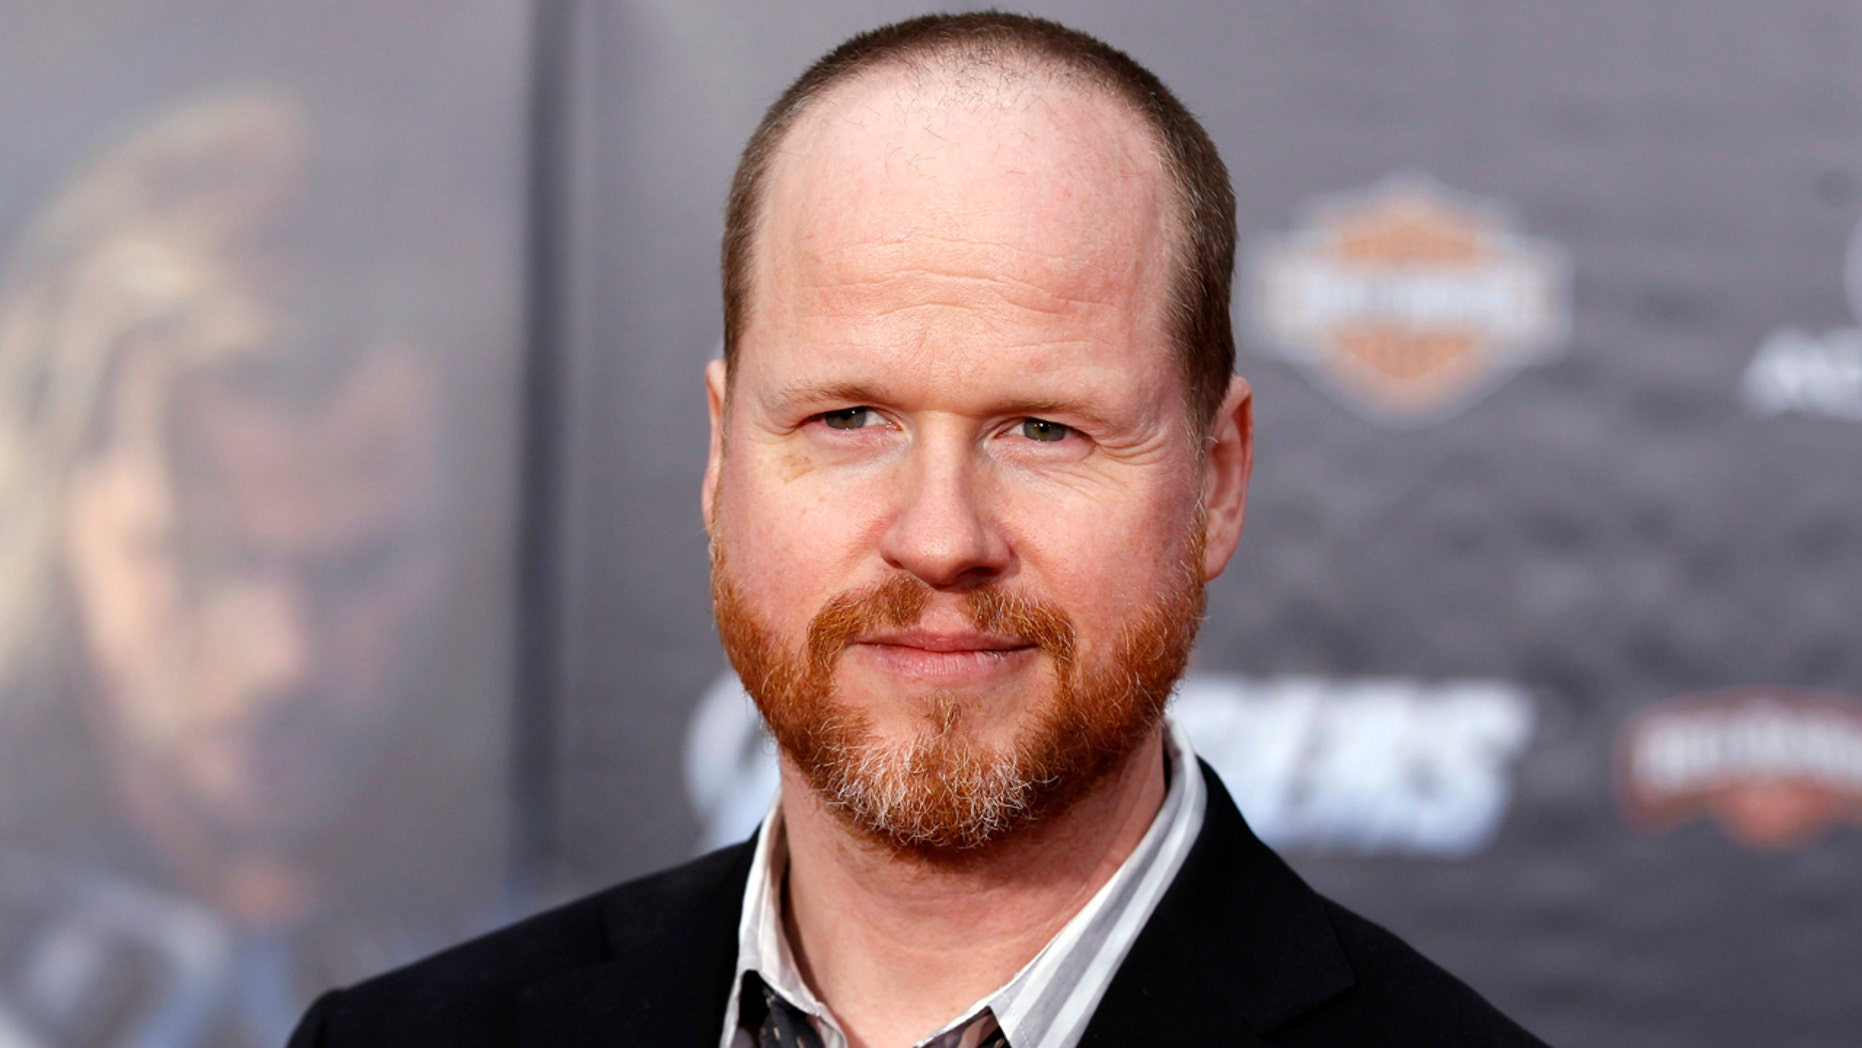 Joss Whedon who is known for his strong political views, voiced his opinions against Trump via Twitter after the passing of the new tax bill. Here, the director attends the Los Angeles world premiere of the 'Avengers' in 2012.